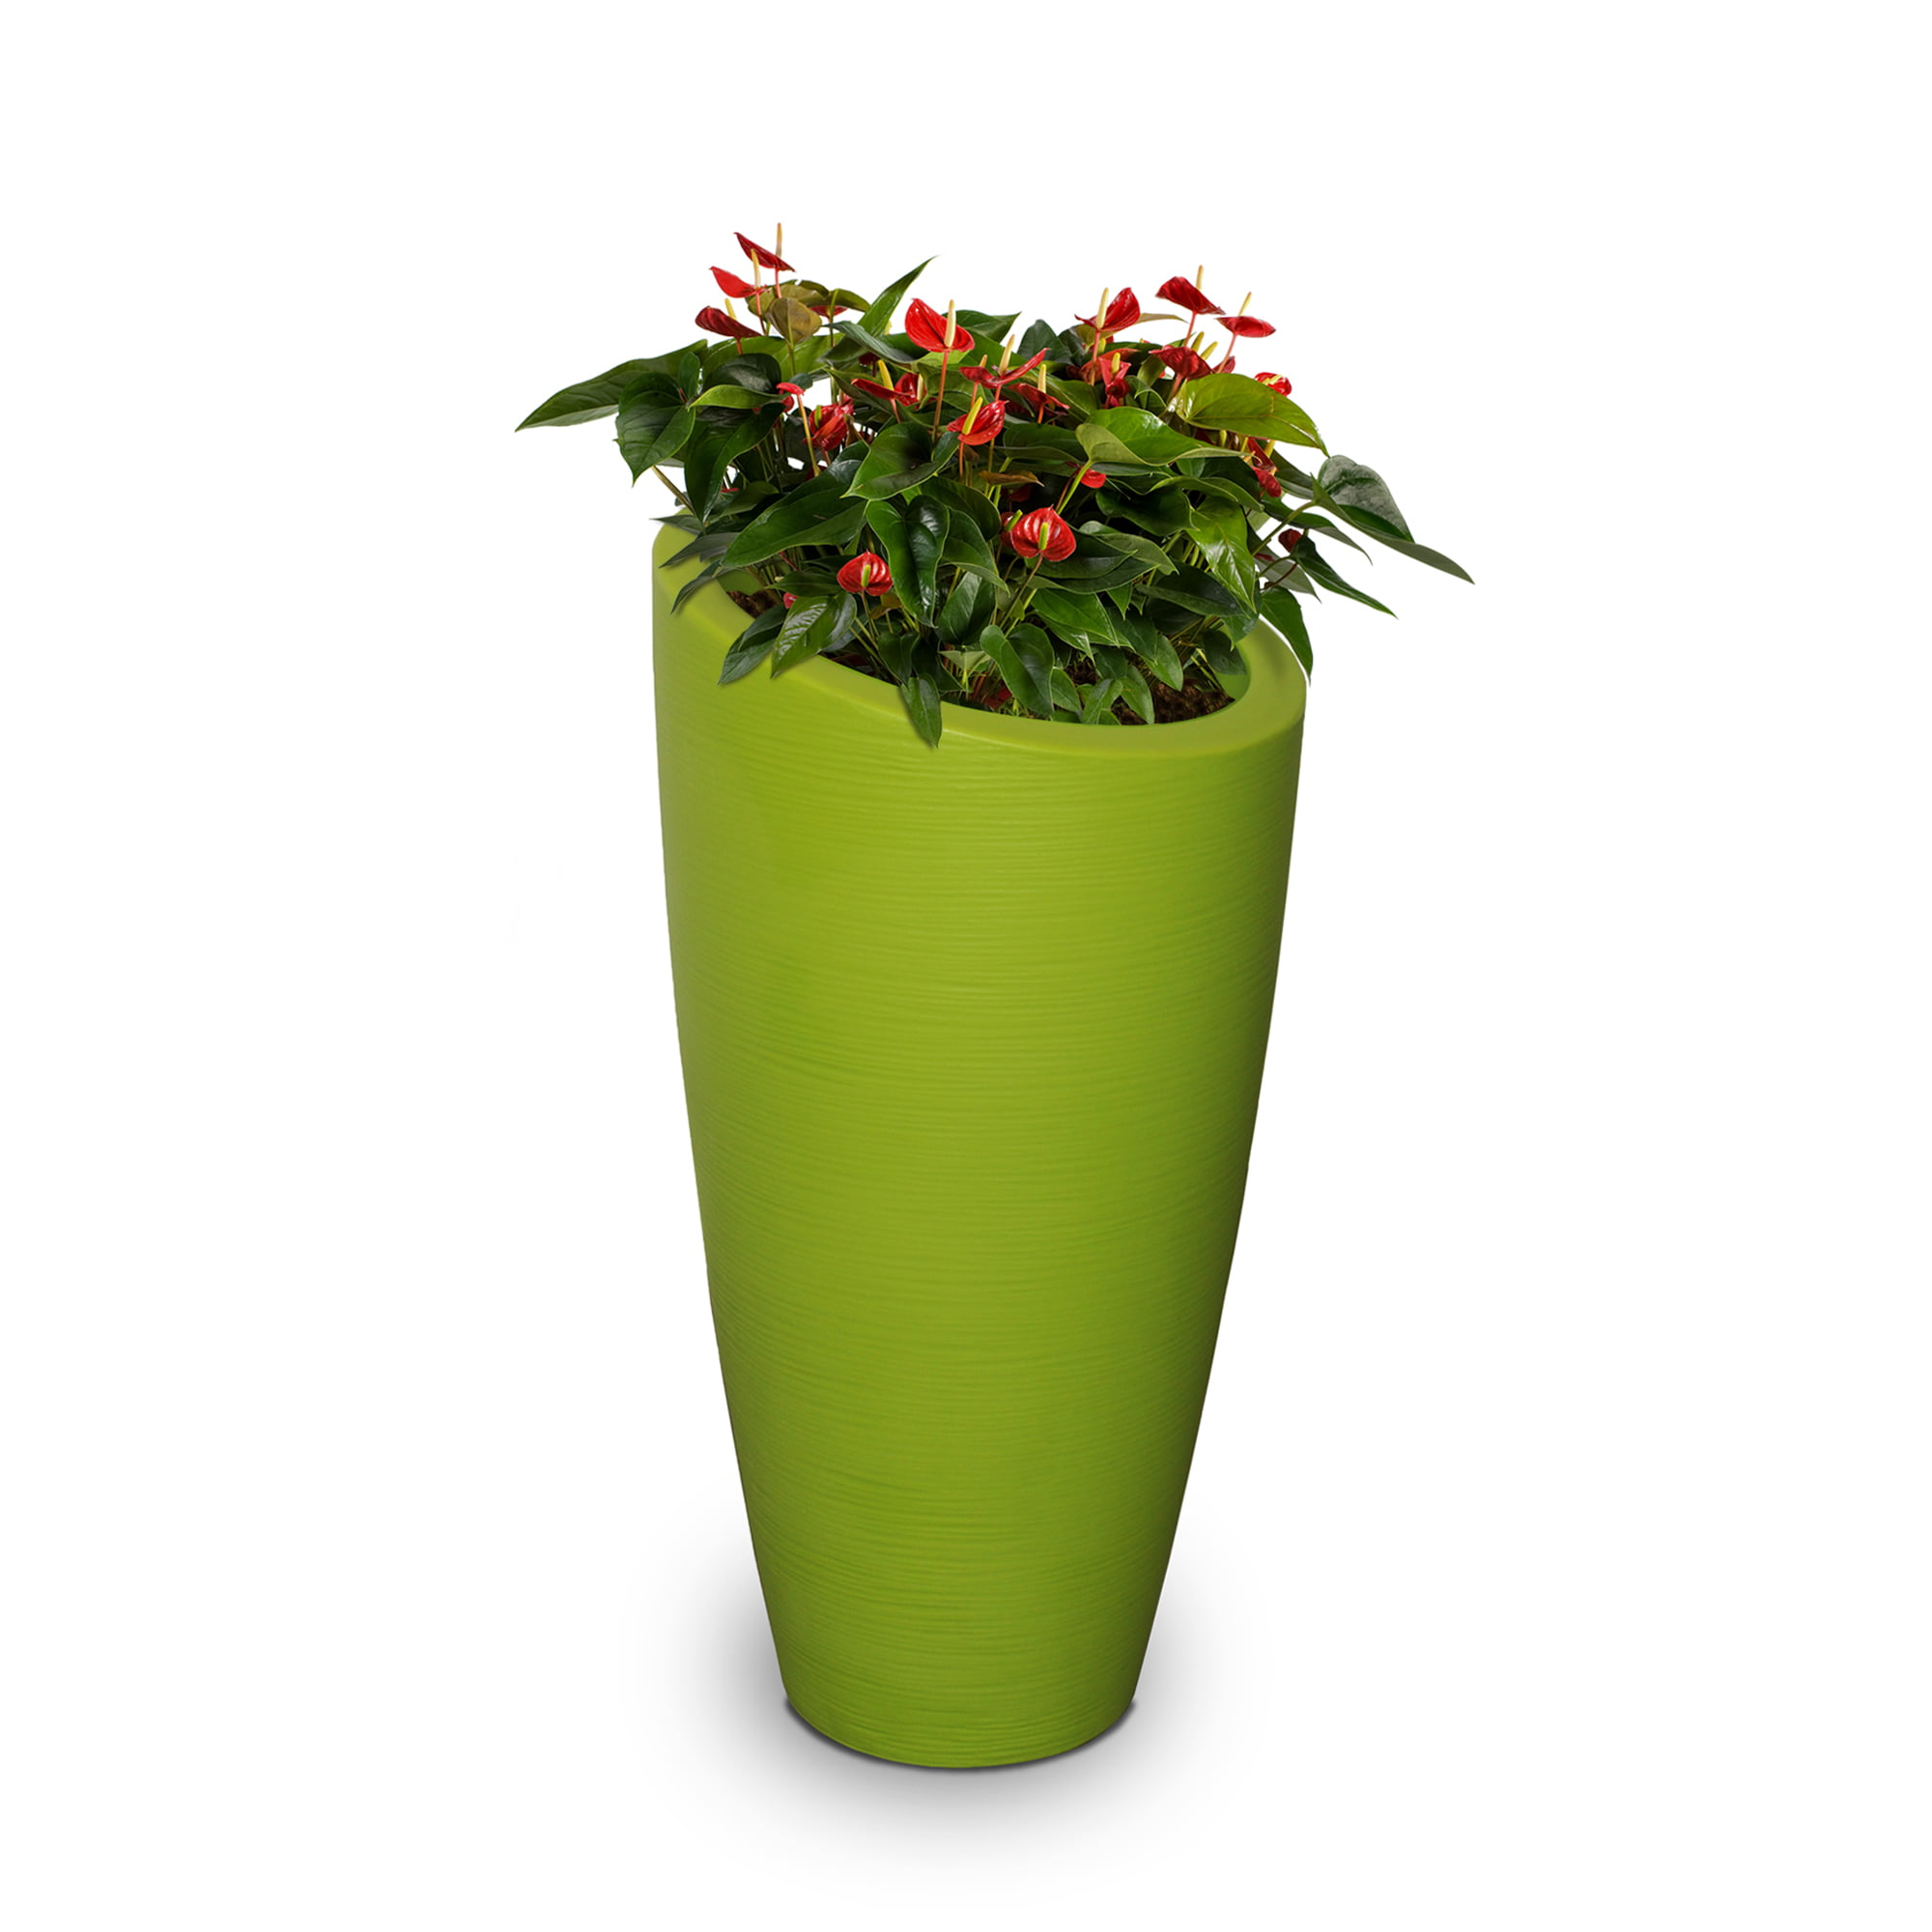 Modesto 42in Tall Planter Macaw Green by Mayne Inc.